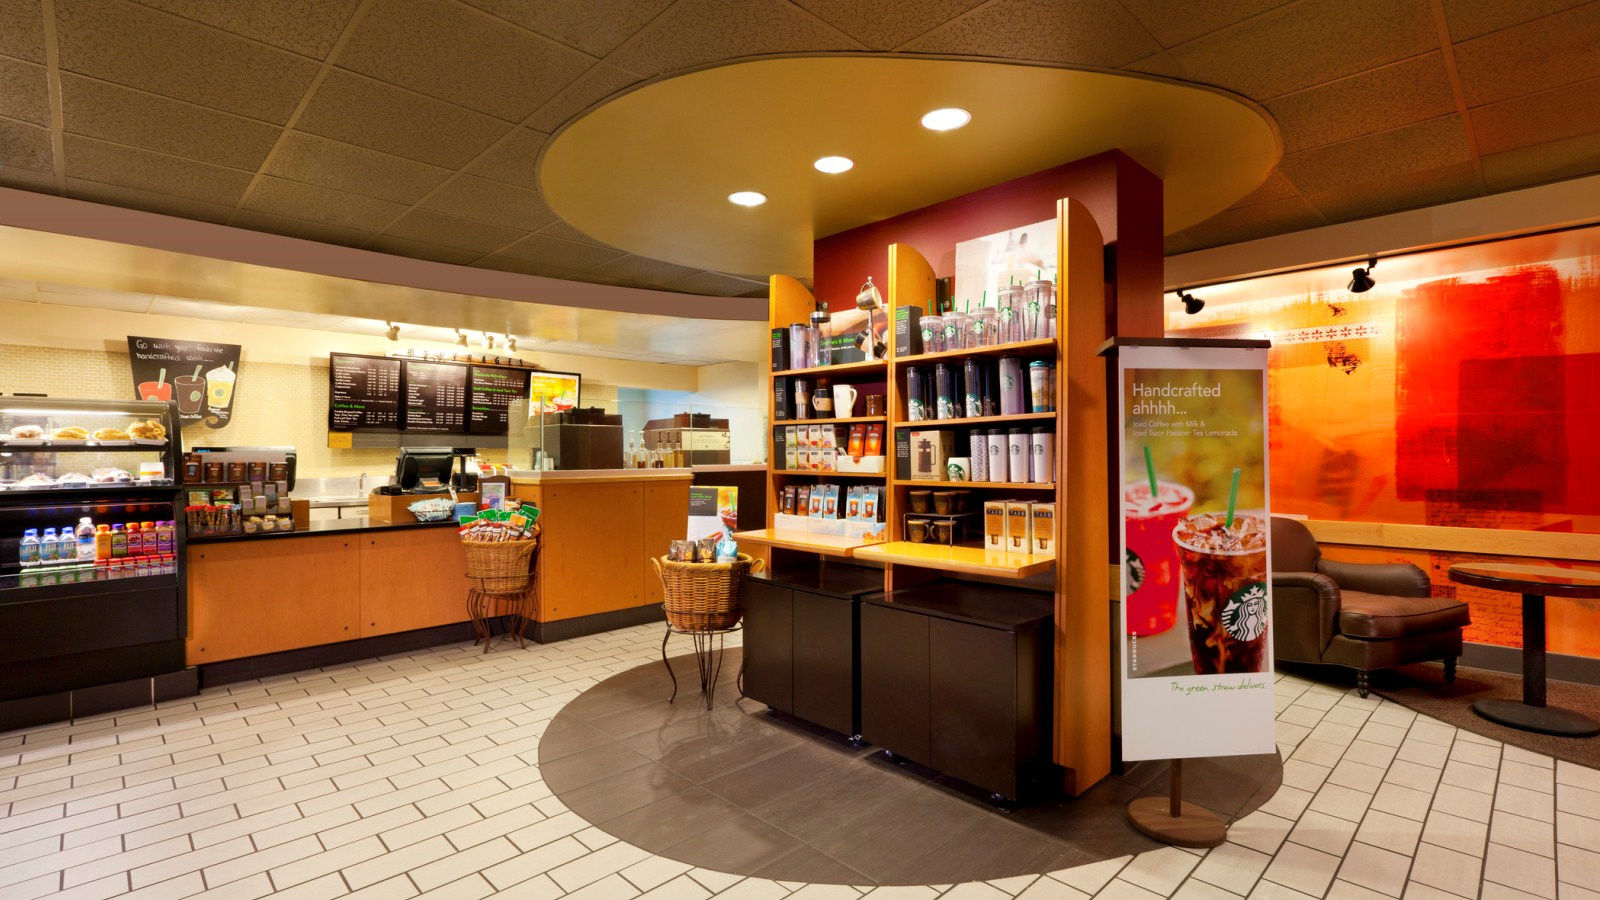 Restaurants In LAX - Starbucks